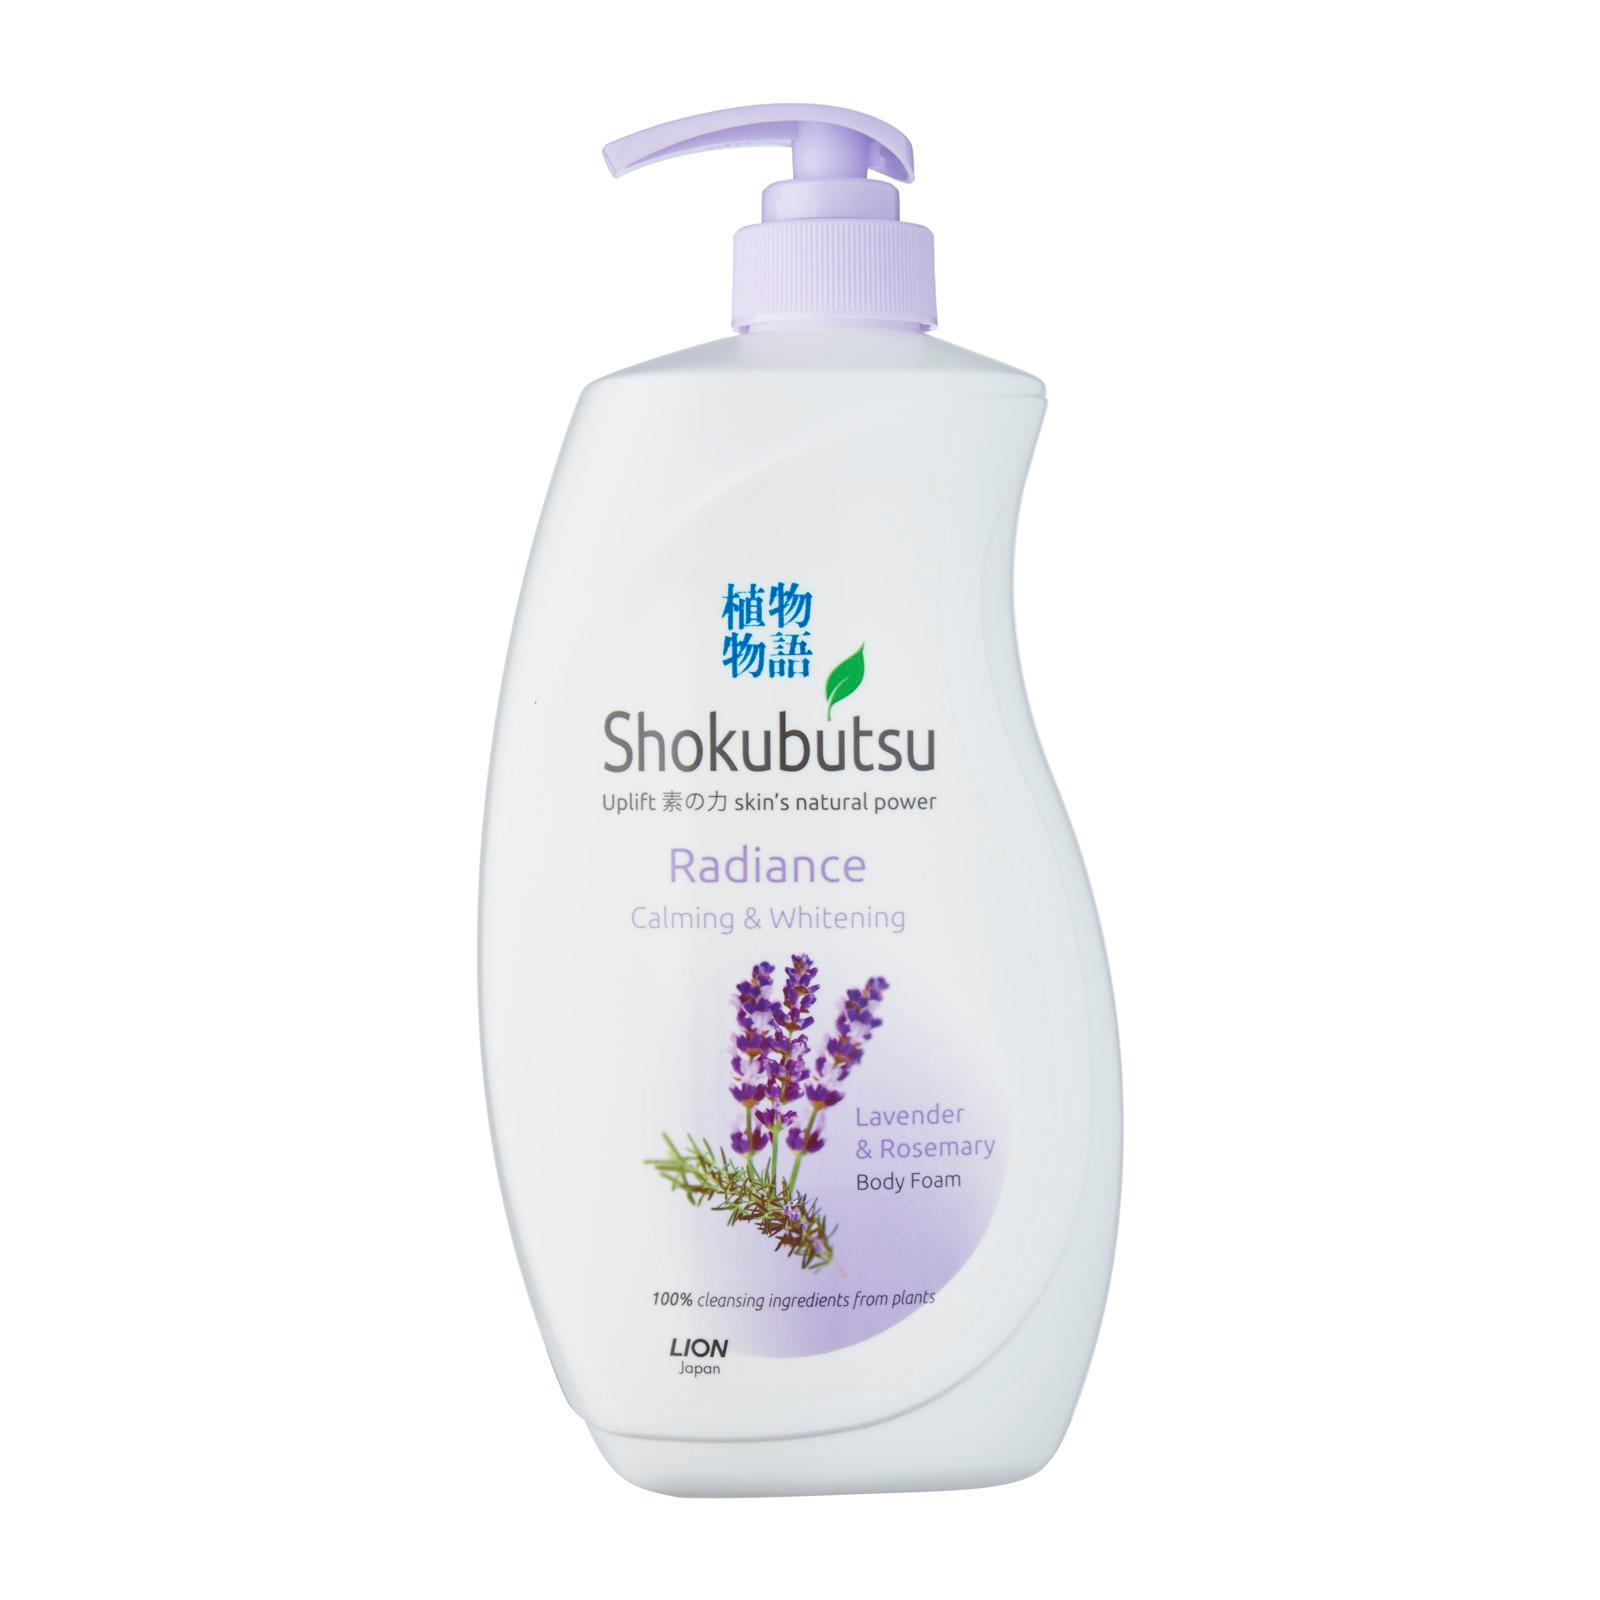 Shokubutsu Radiance Calming & Whitening Lavender & Rosemary Body Foam, 900ml